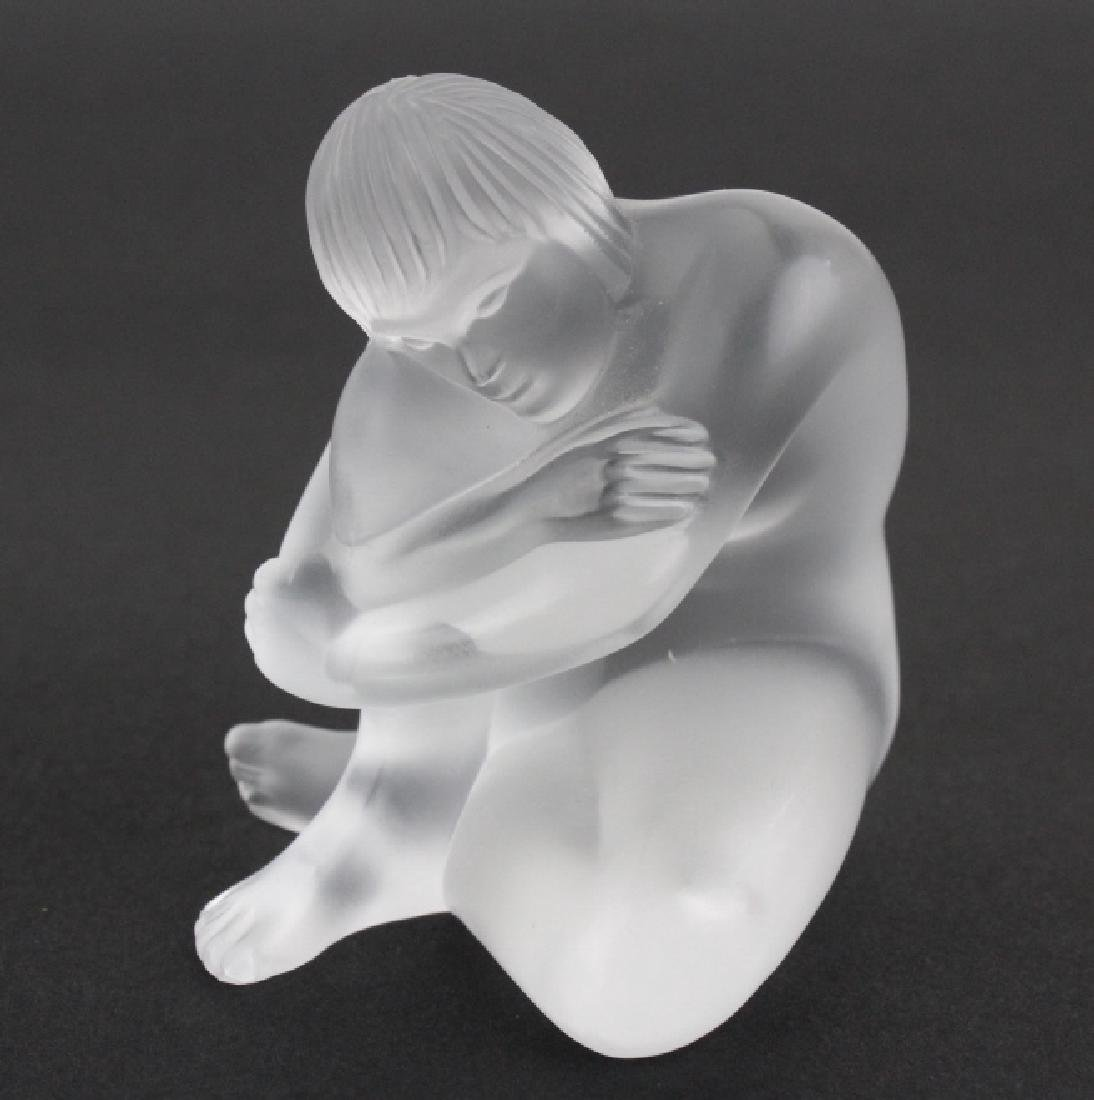 LOT of 3 Lalique French Art Glass Nude Figurine - 4